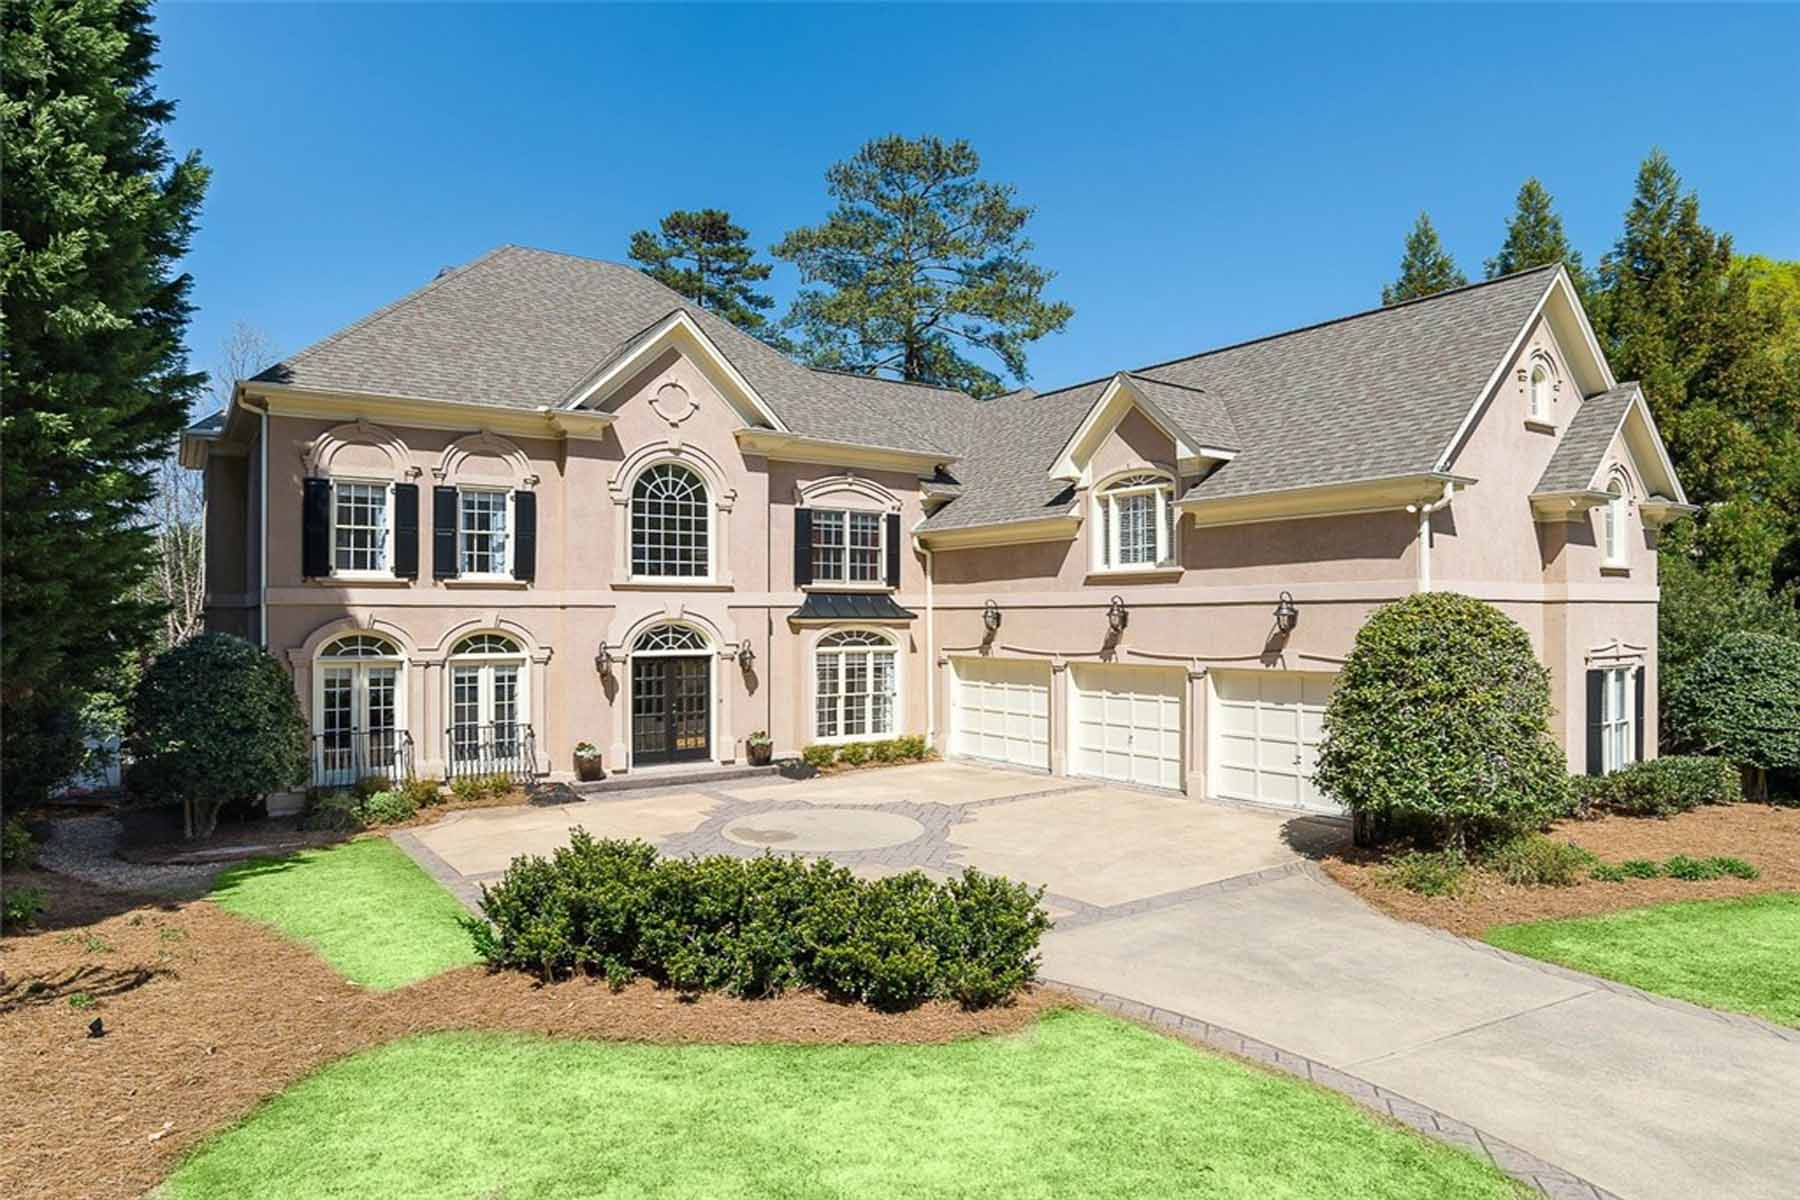 Villa per Vendita alle ore Dream Home in Highly Sought After Neighborhood 2322 Edgemere Lake Circle Marietta, Georgia, 30062 Stati Uniti